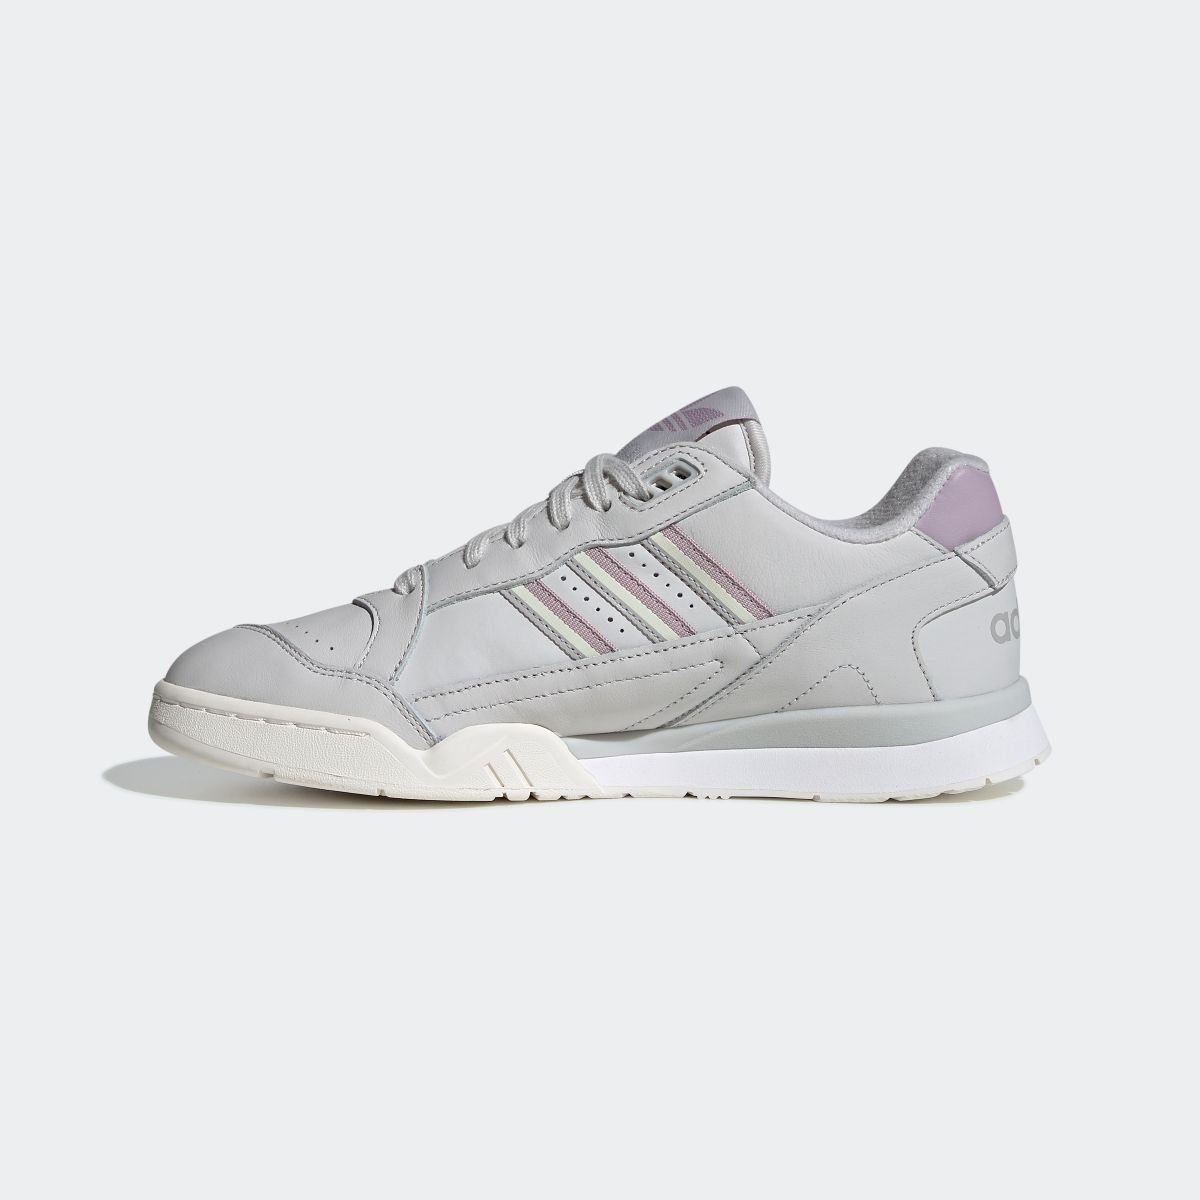 Adidas adidas A.R. Trainer W A.R. TRAINER W Lady's men originals shoes sneakers G27714 point_adidasday